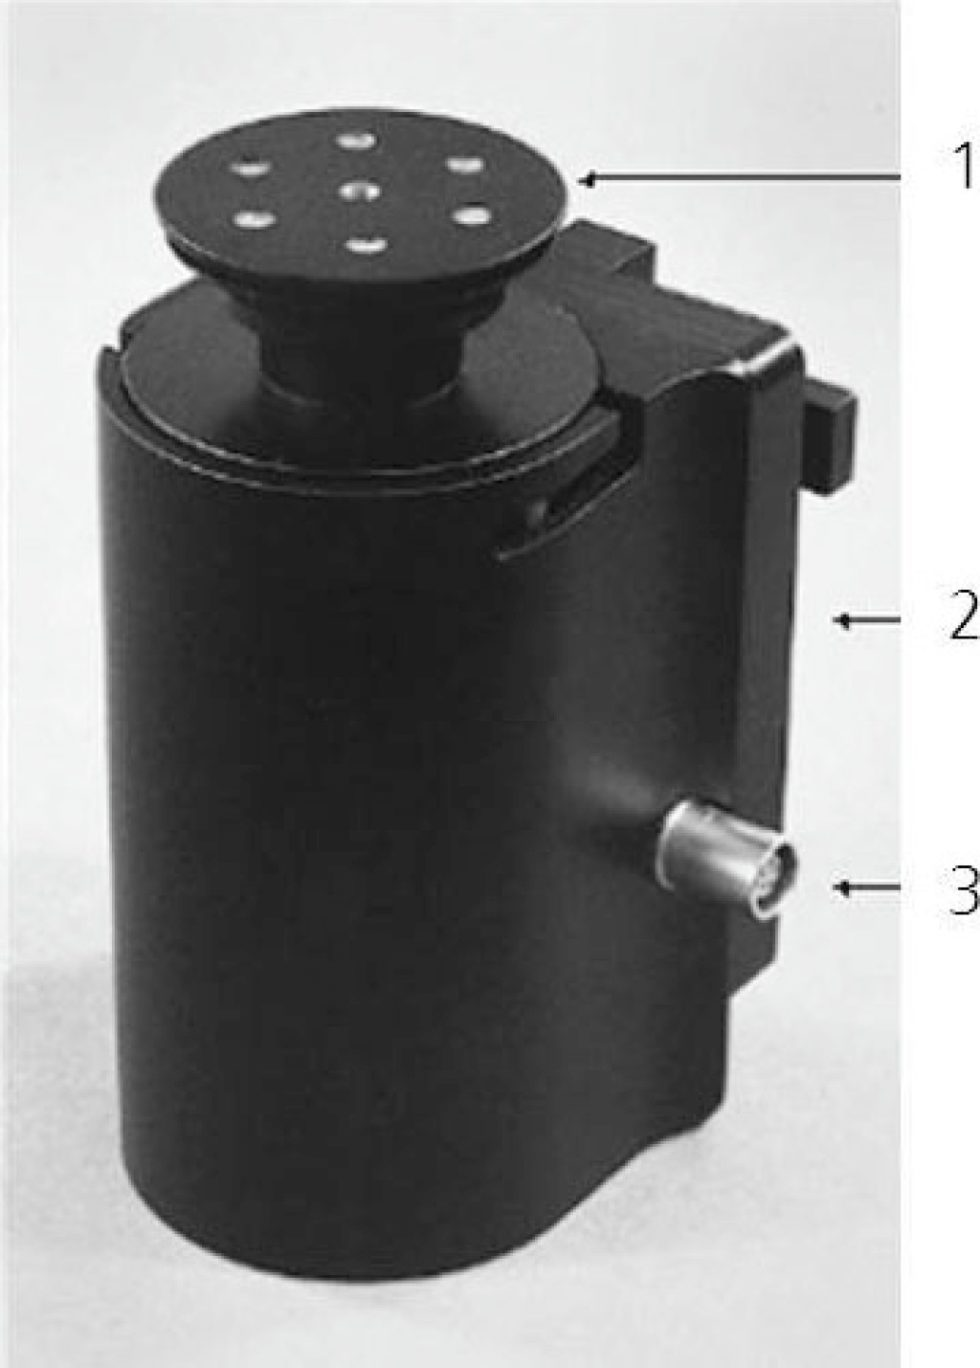 Figure 1.  RESPICON personal aerosol monitor. 1: annular slit inlet, 2: photometer electronics, 3: cable connector. Quelle: ITEM/ BAuA